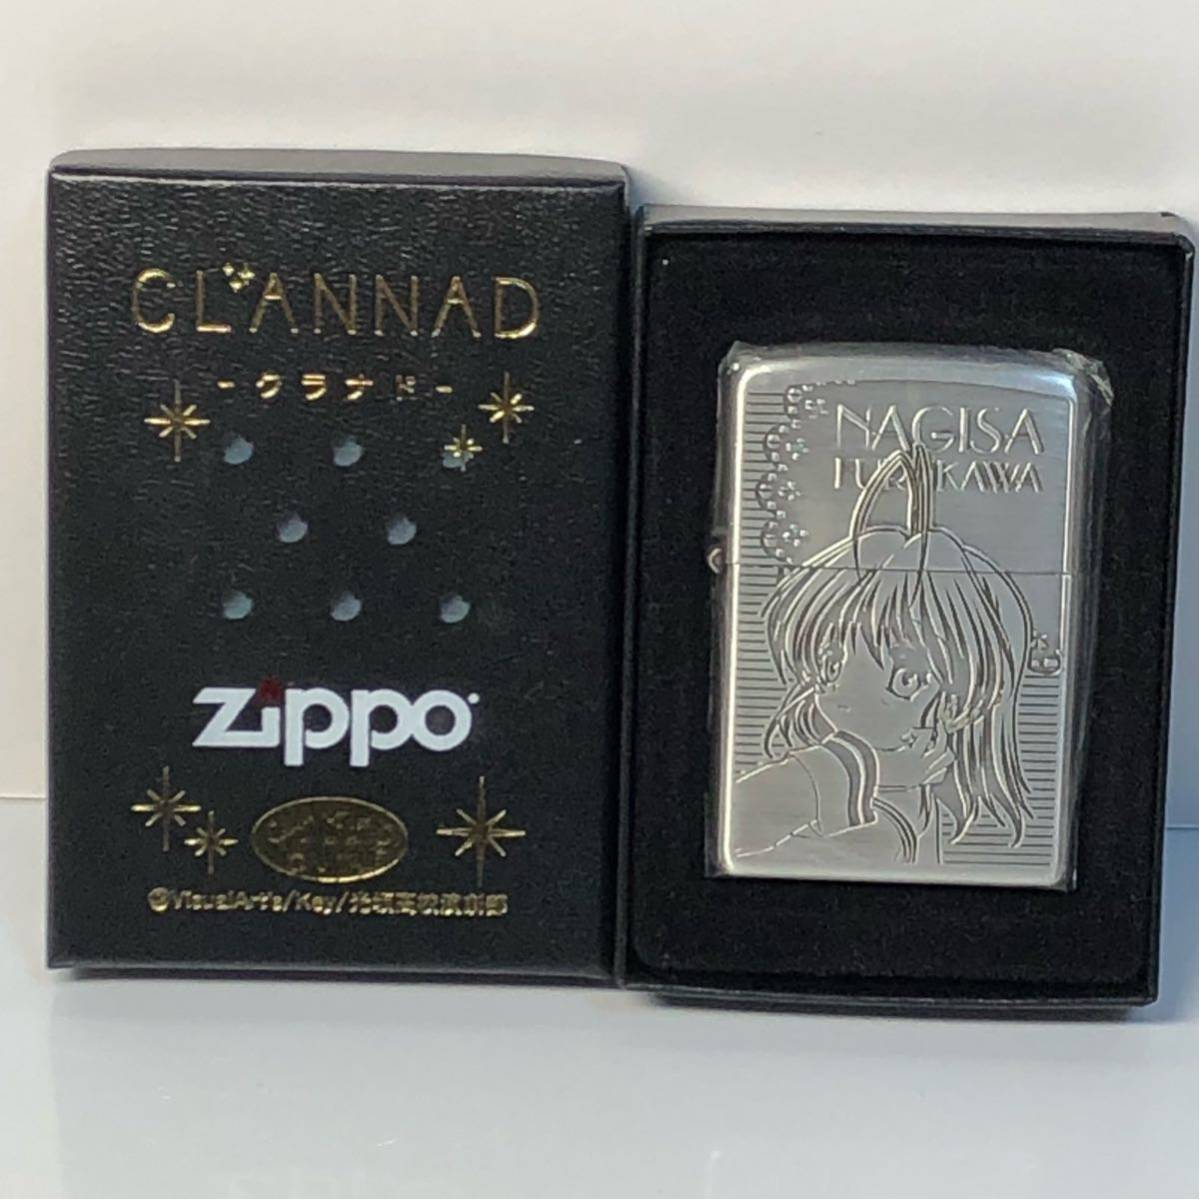 CLANNAD ON TV 古河渚 ZIPPO 新品